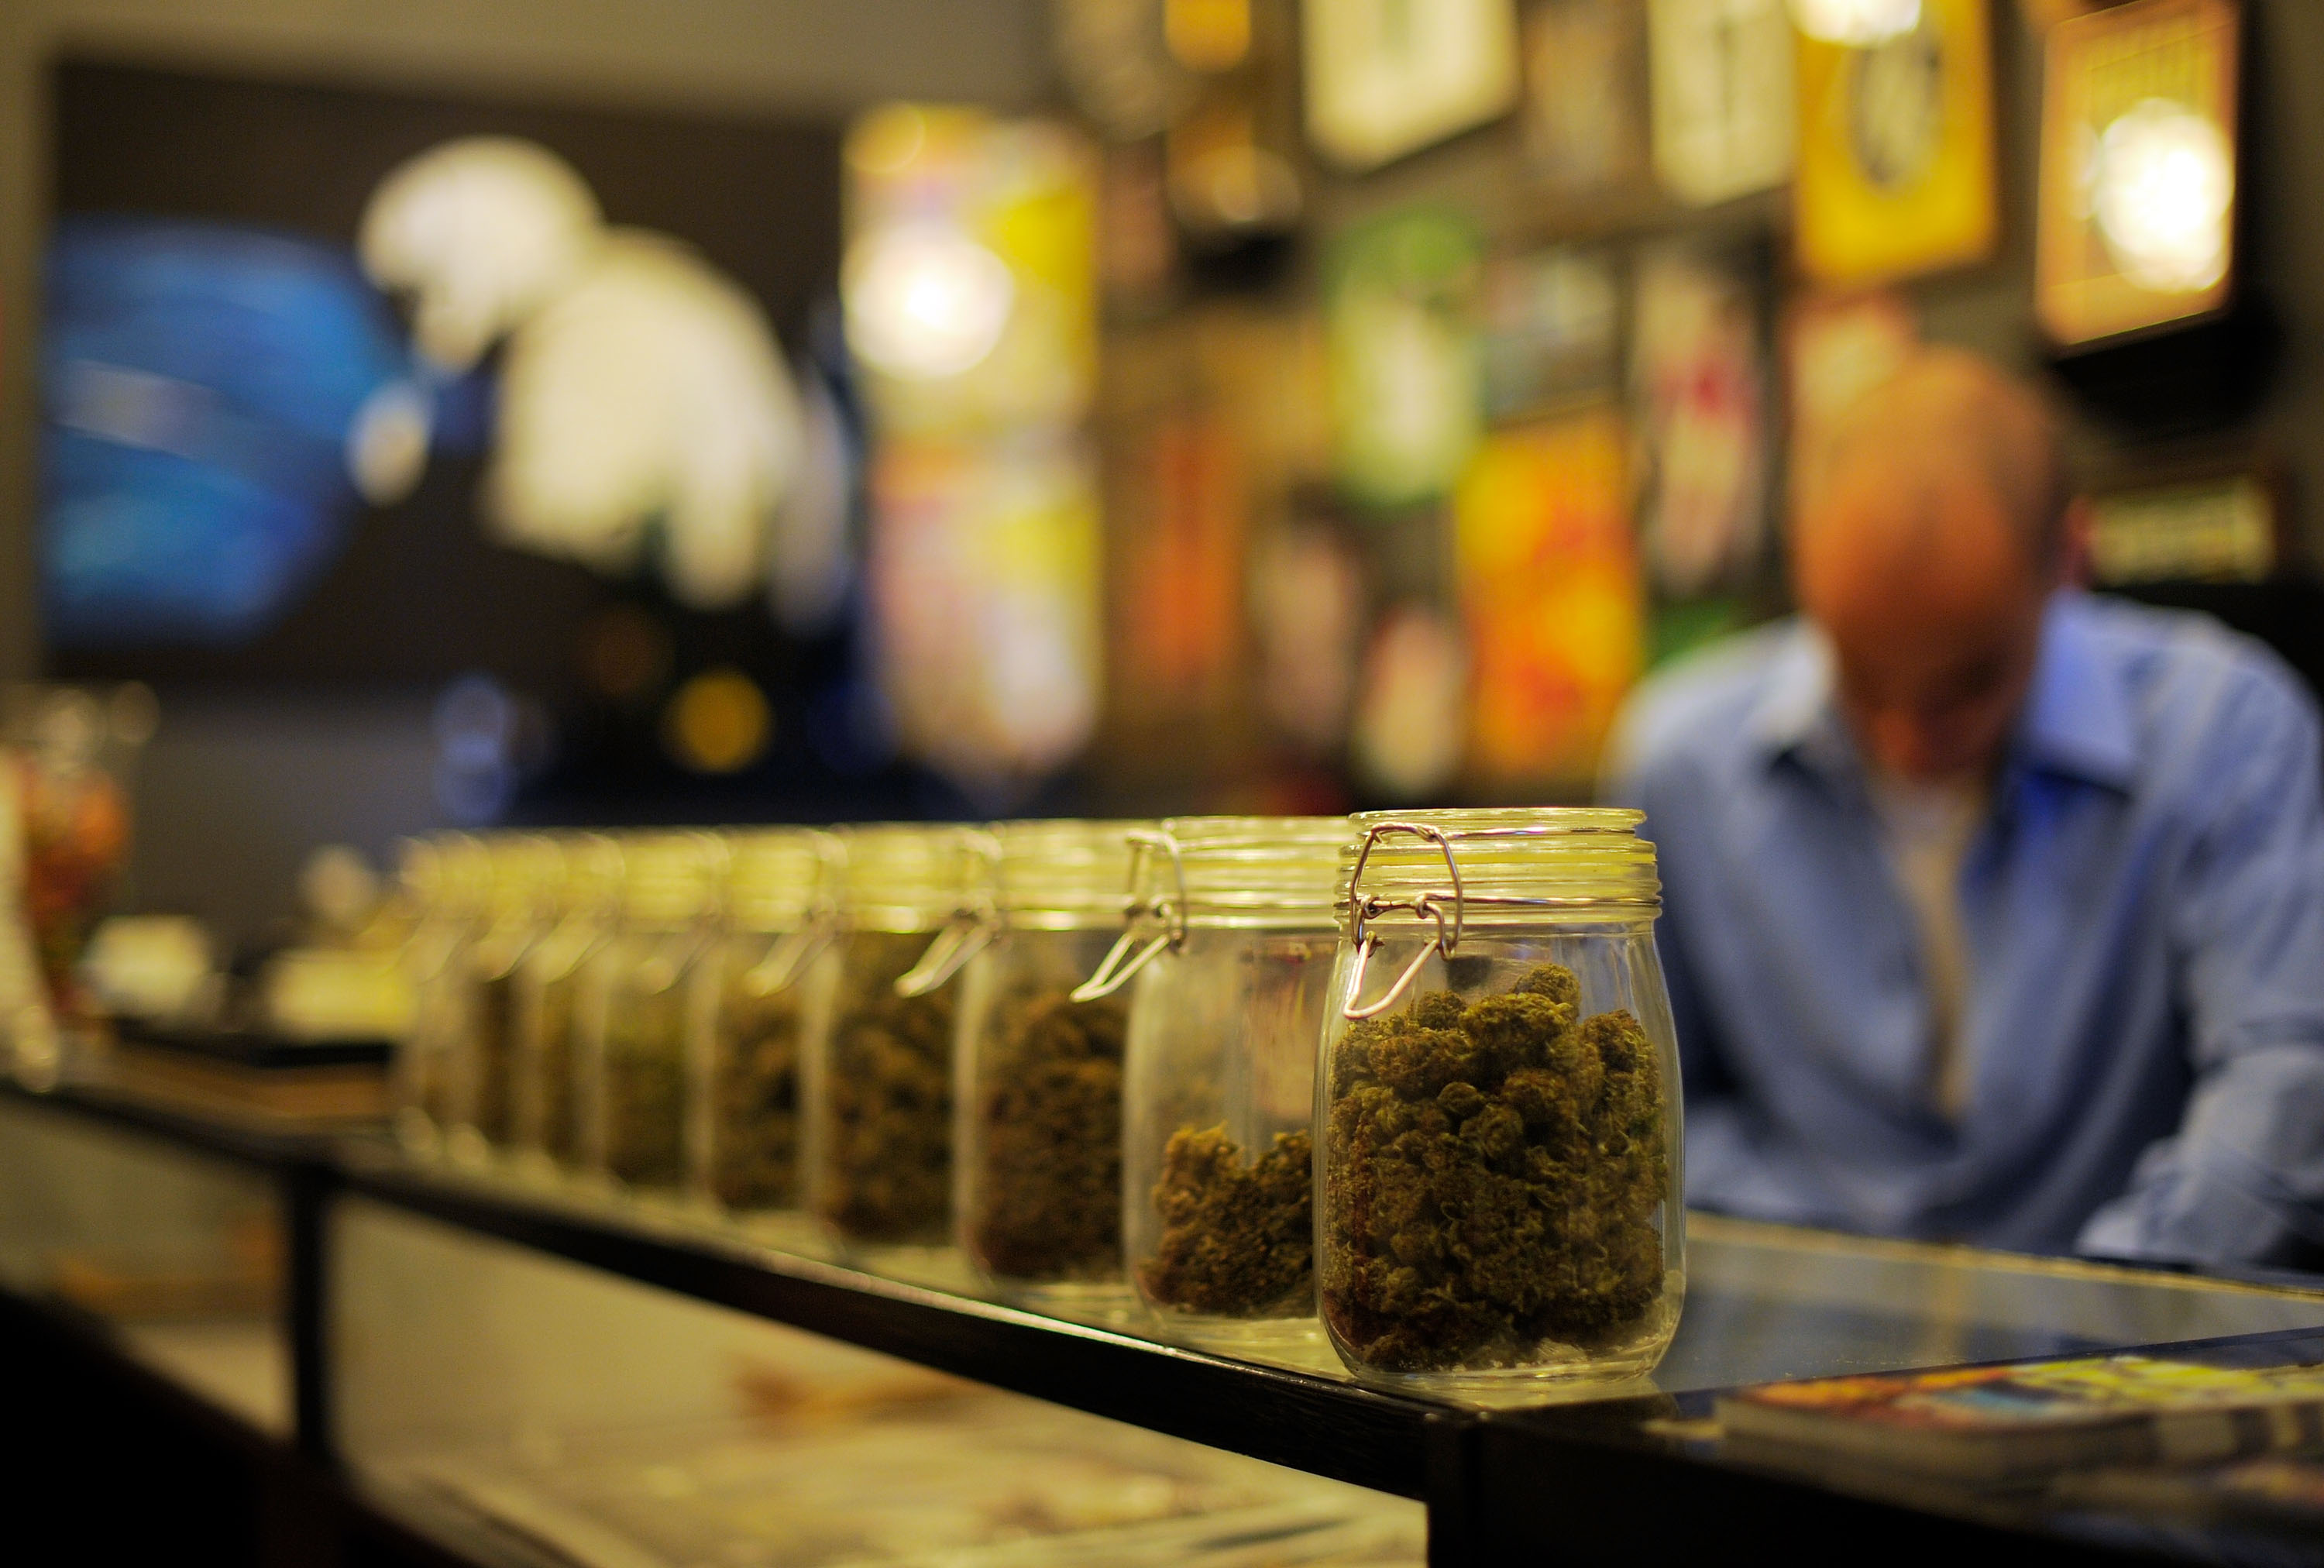 Over 400 Marijuana Stores Ordered To Close As City Regulates Industry